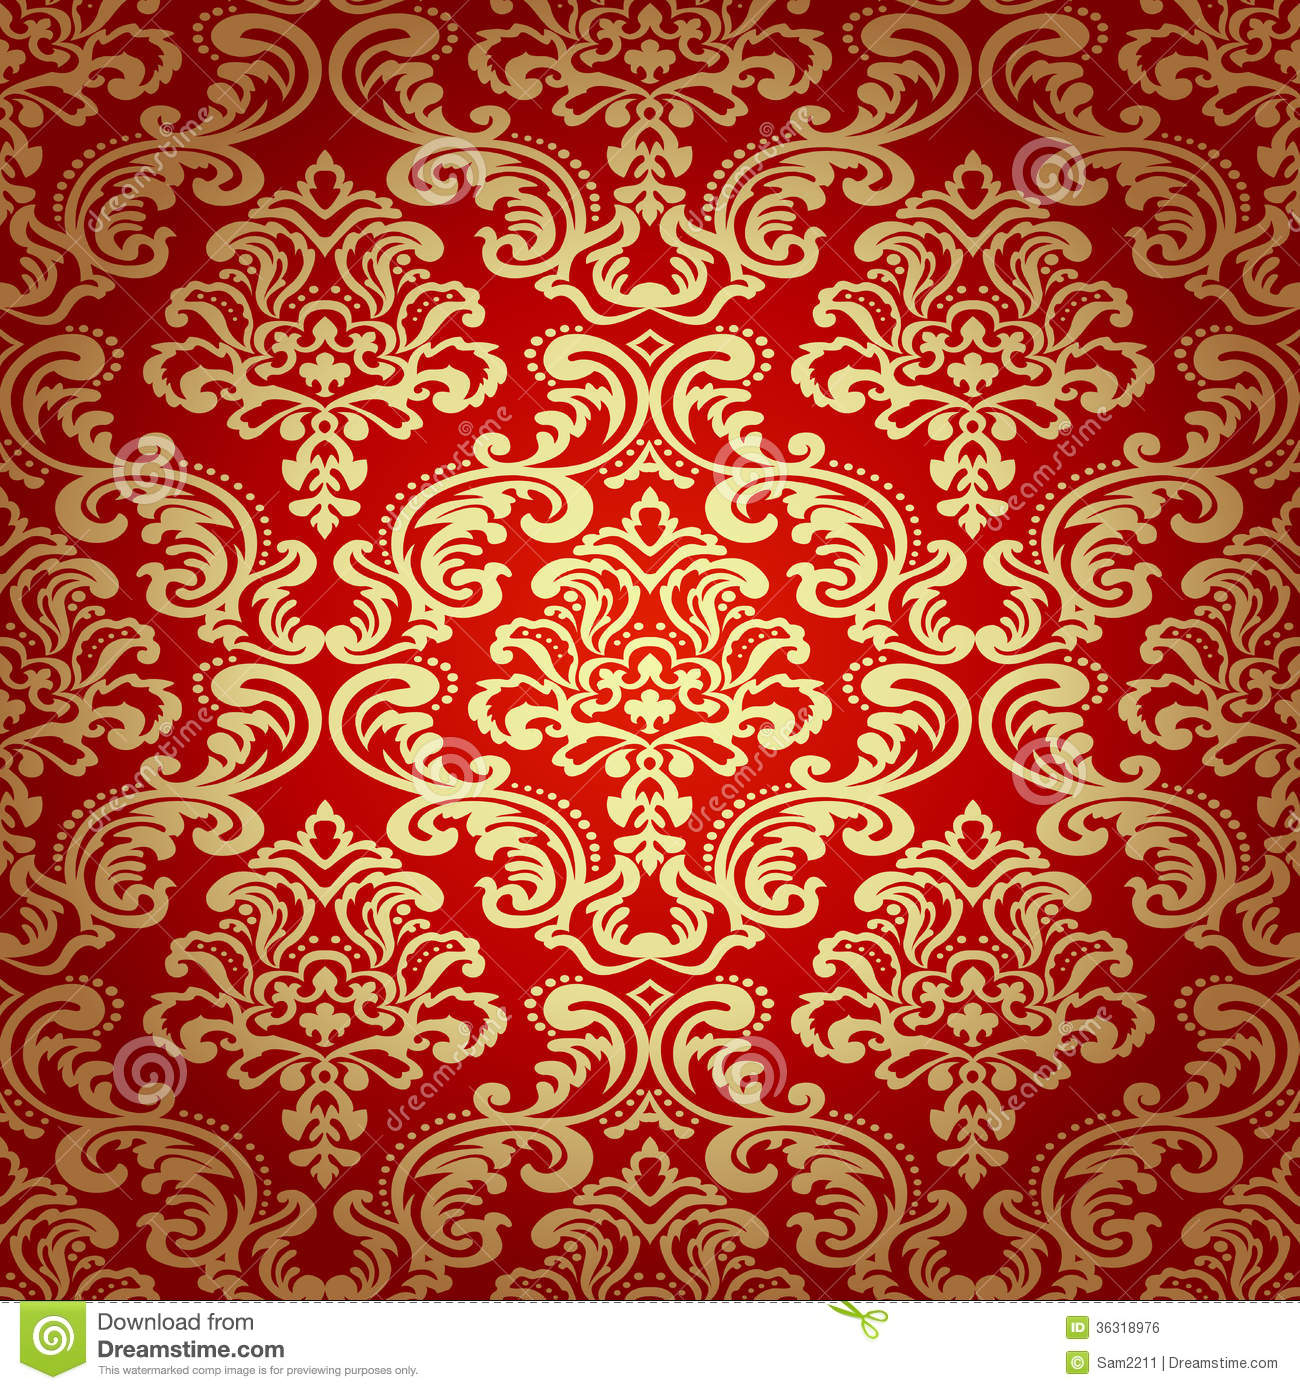 Nahtlose tapete des muster background damask lizenzfreies for Tapete gold muster